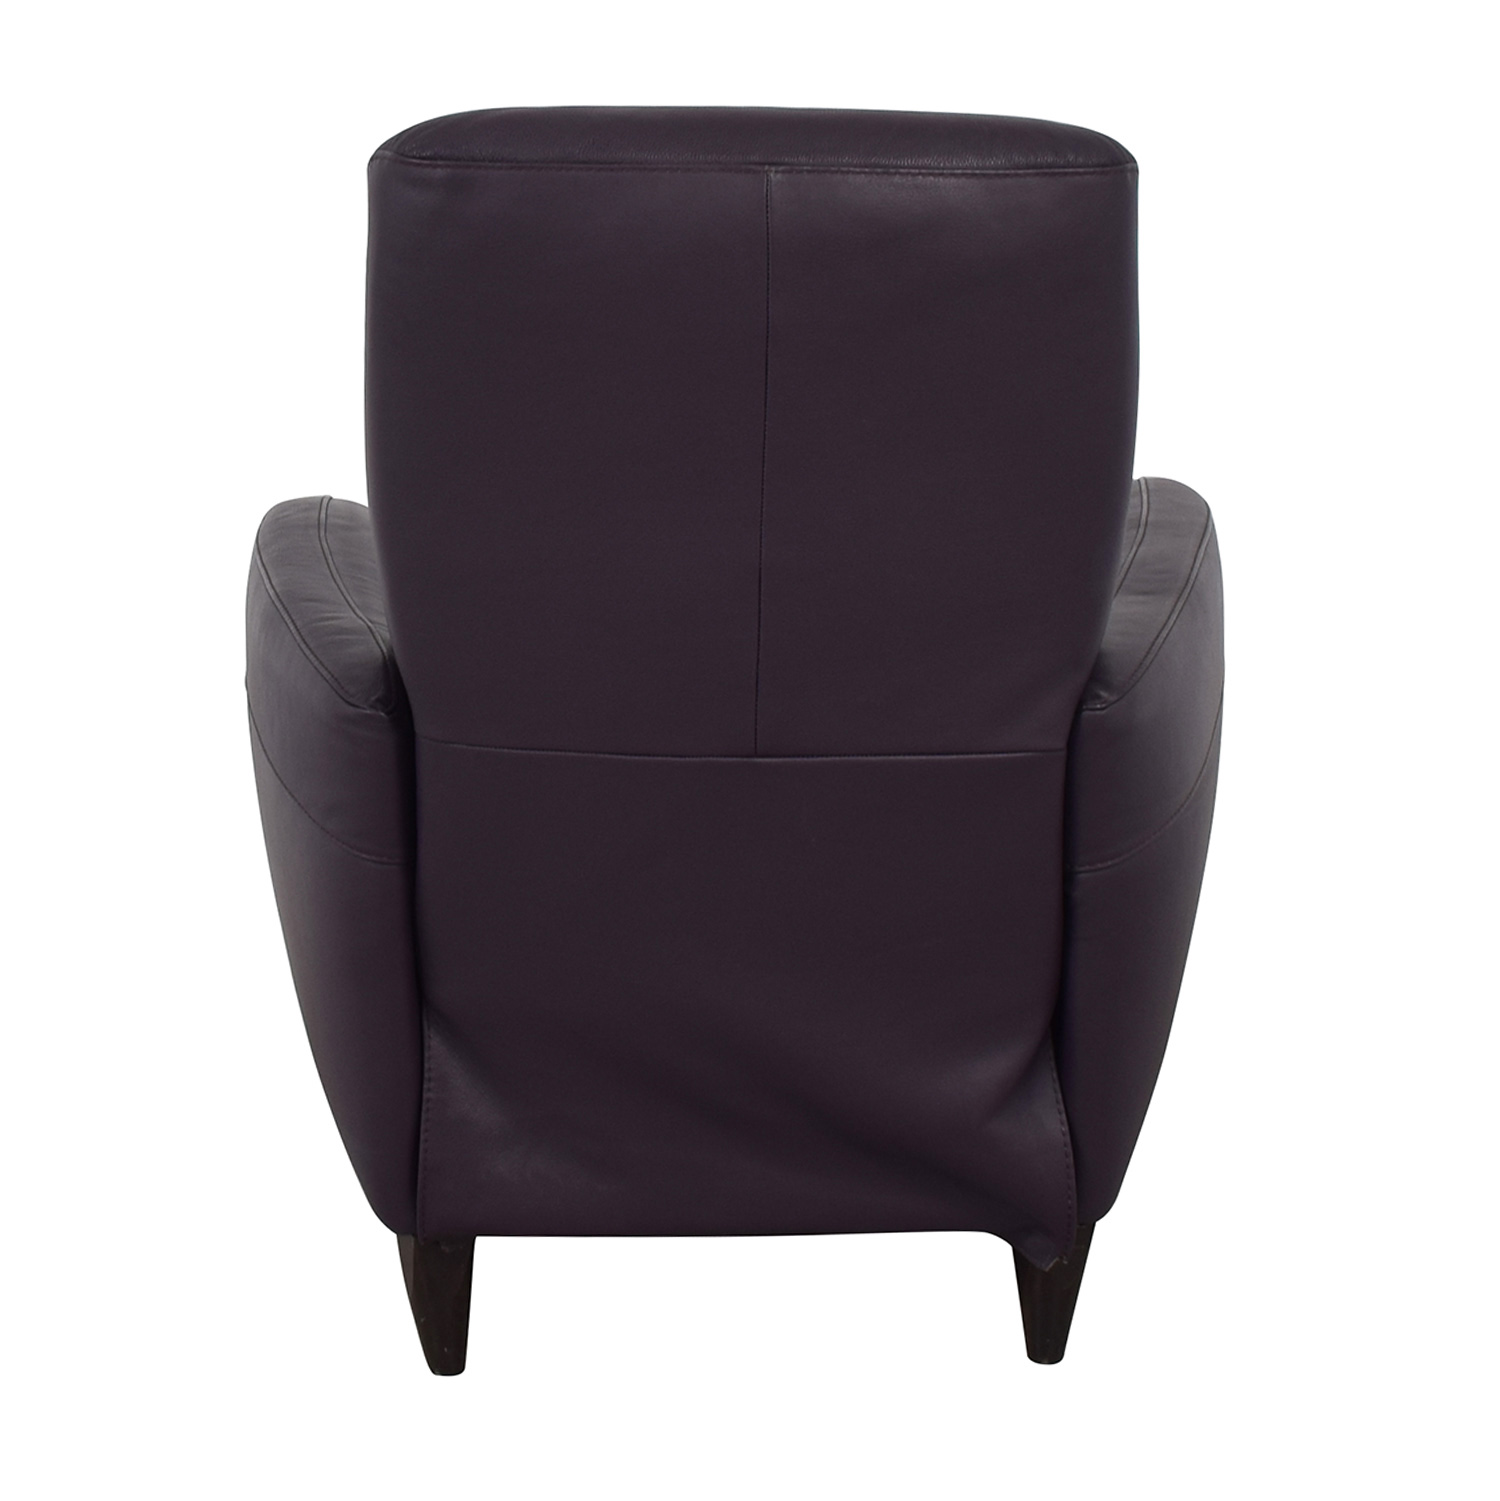 purple recliner chairs office chair support for upper back pain recliners used sale